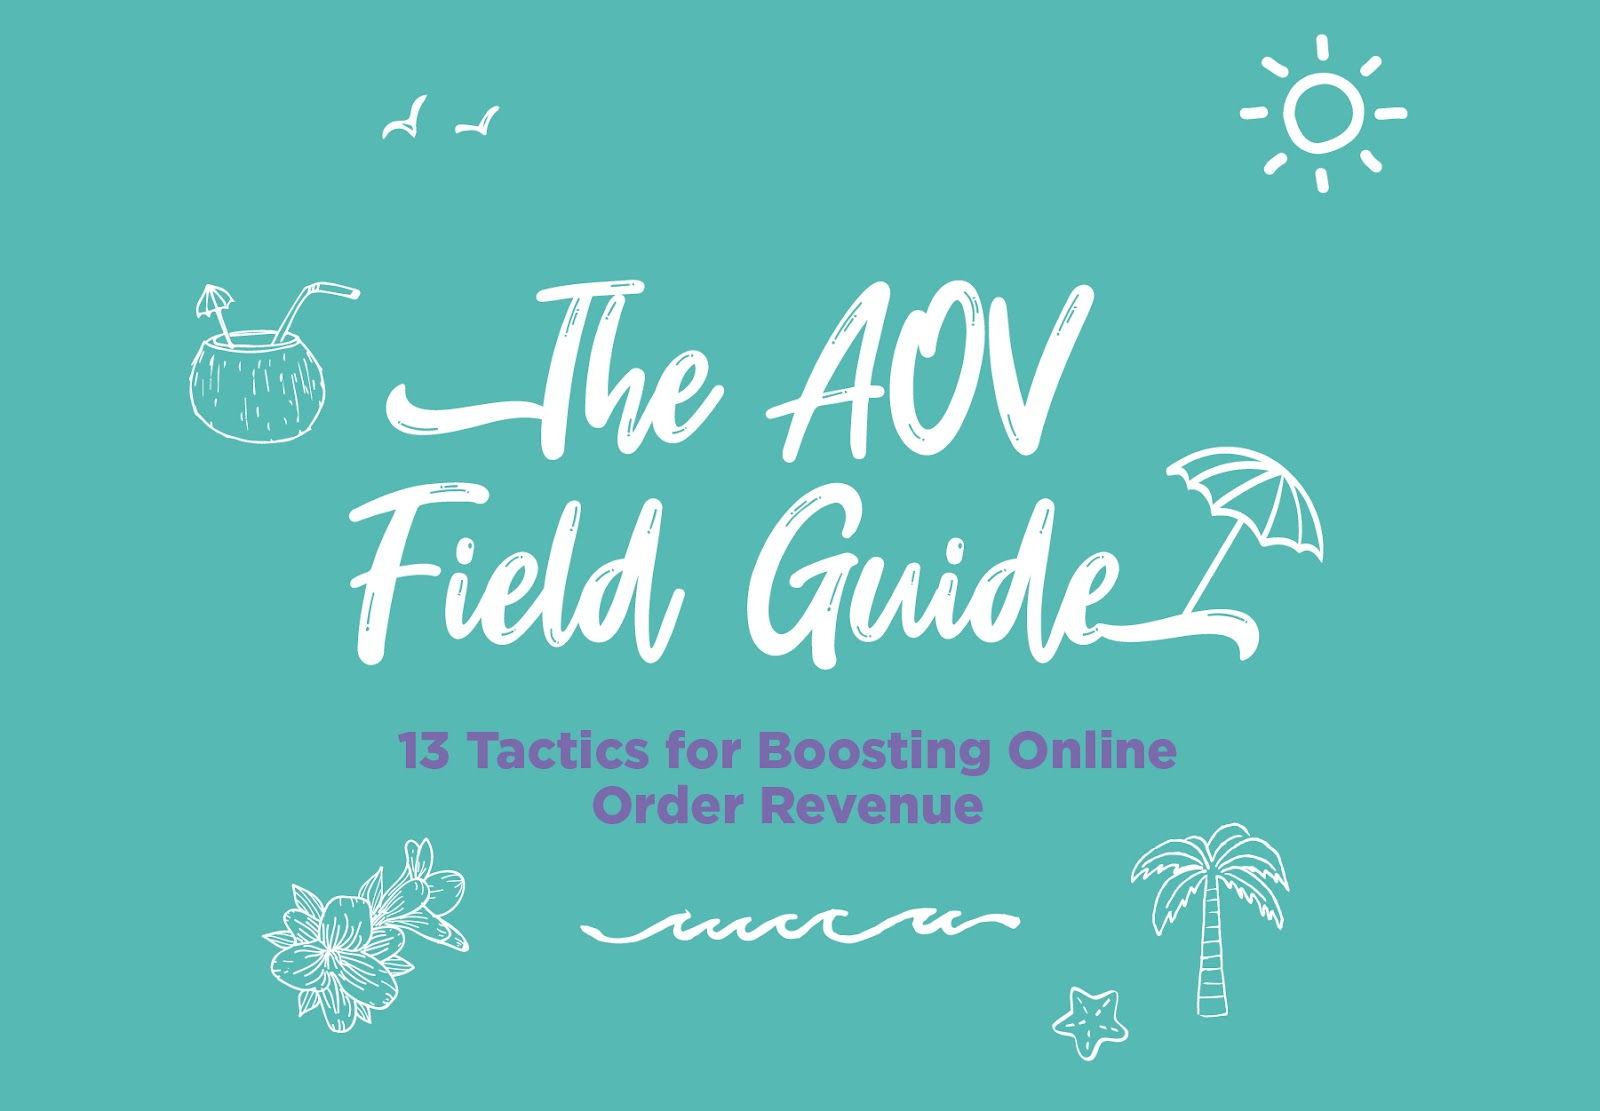 The AOV Guide: 13 Tactics for Boosting Order Revenue [INFOGRAPHIC]